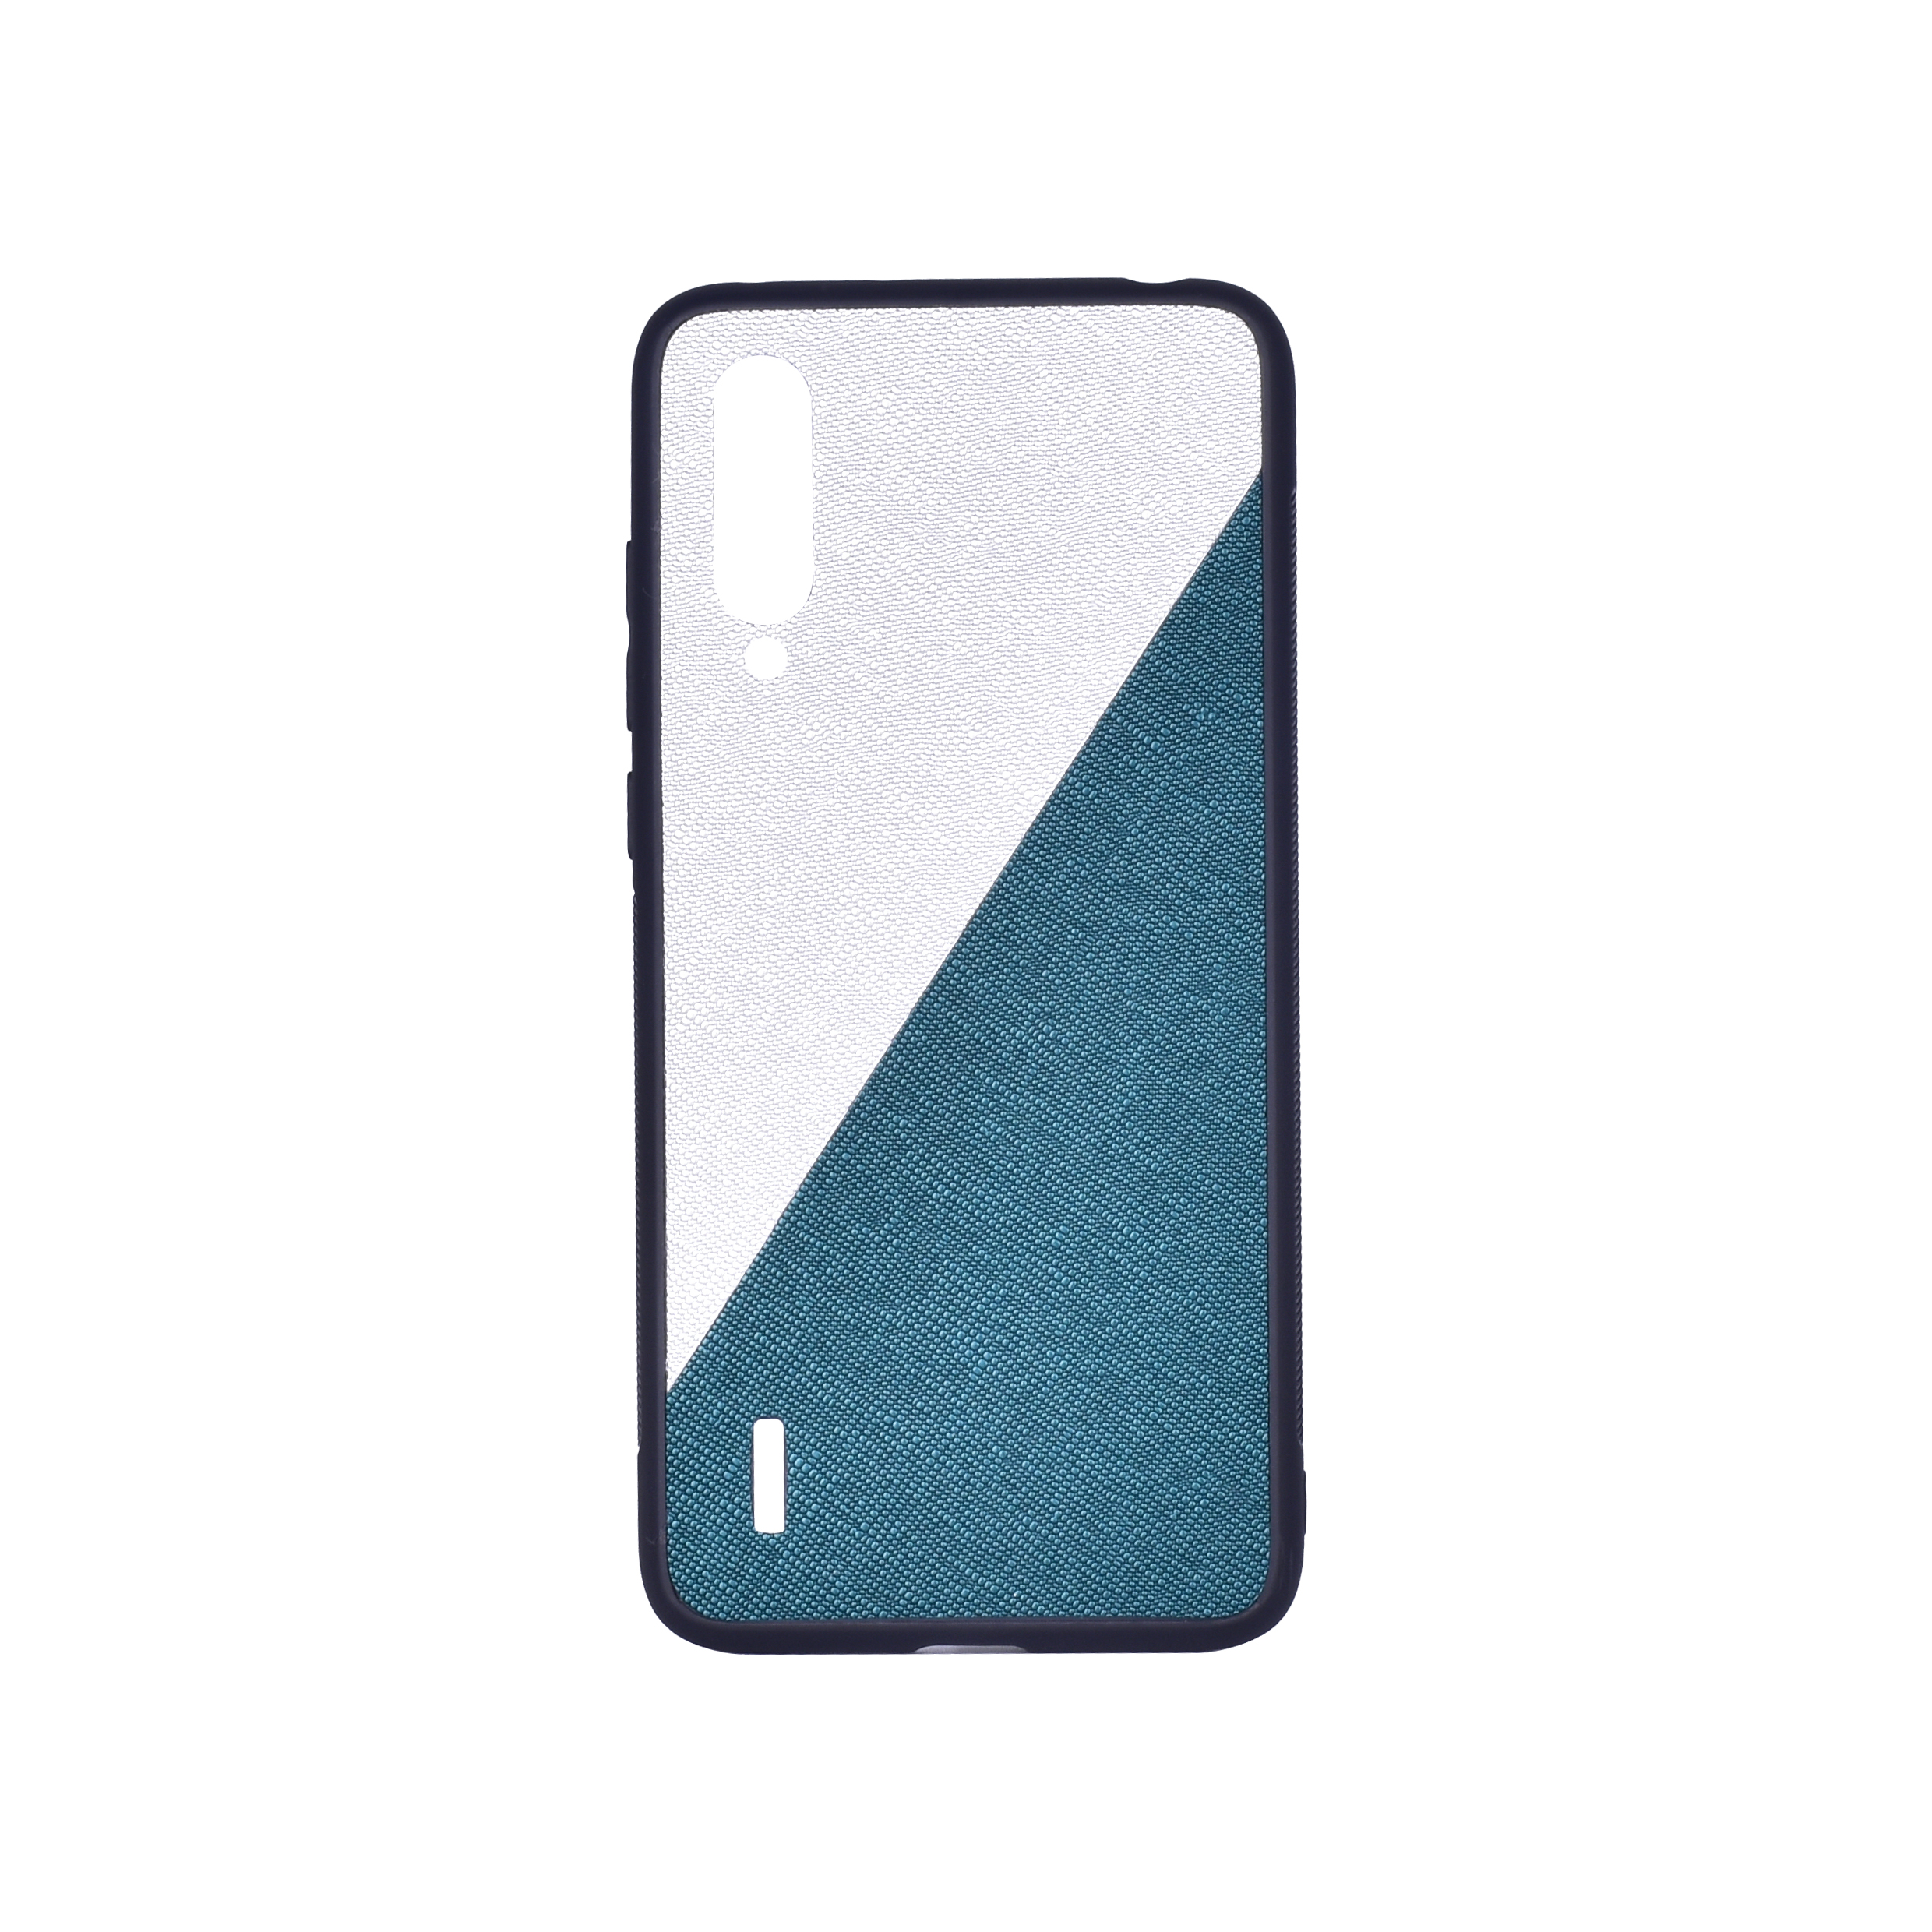 Leather case with color matching for Xiaomi 9 cc9e A3 Redmi S2 <strong>Y2</strong> Note 7 Note 7 Pro Note 7S Redmi K20 K20 Pro Mi 9T 9T Pro